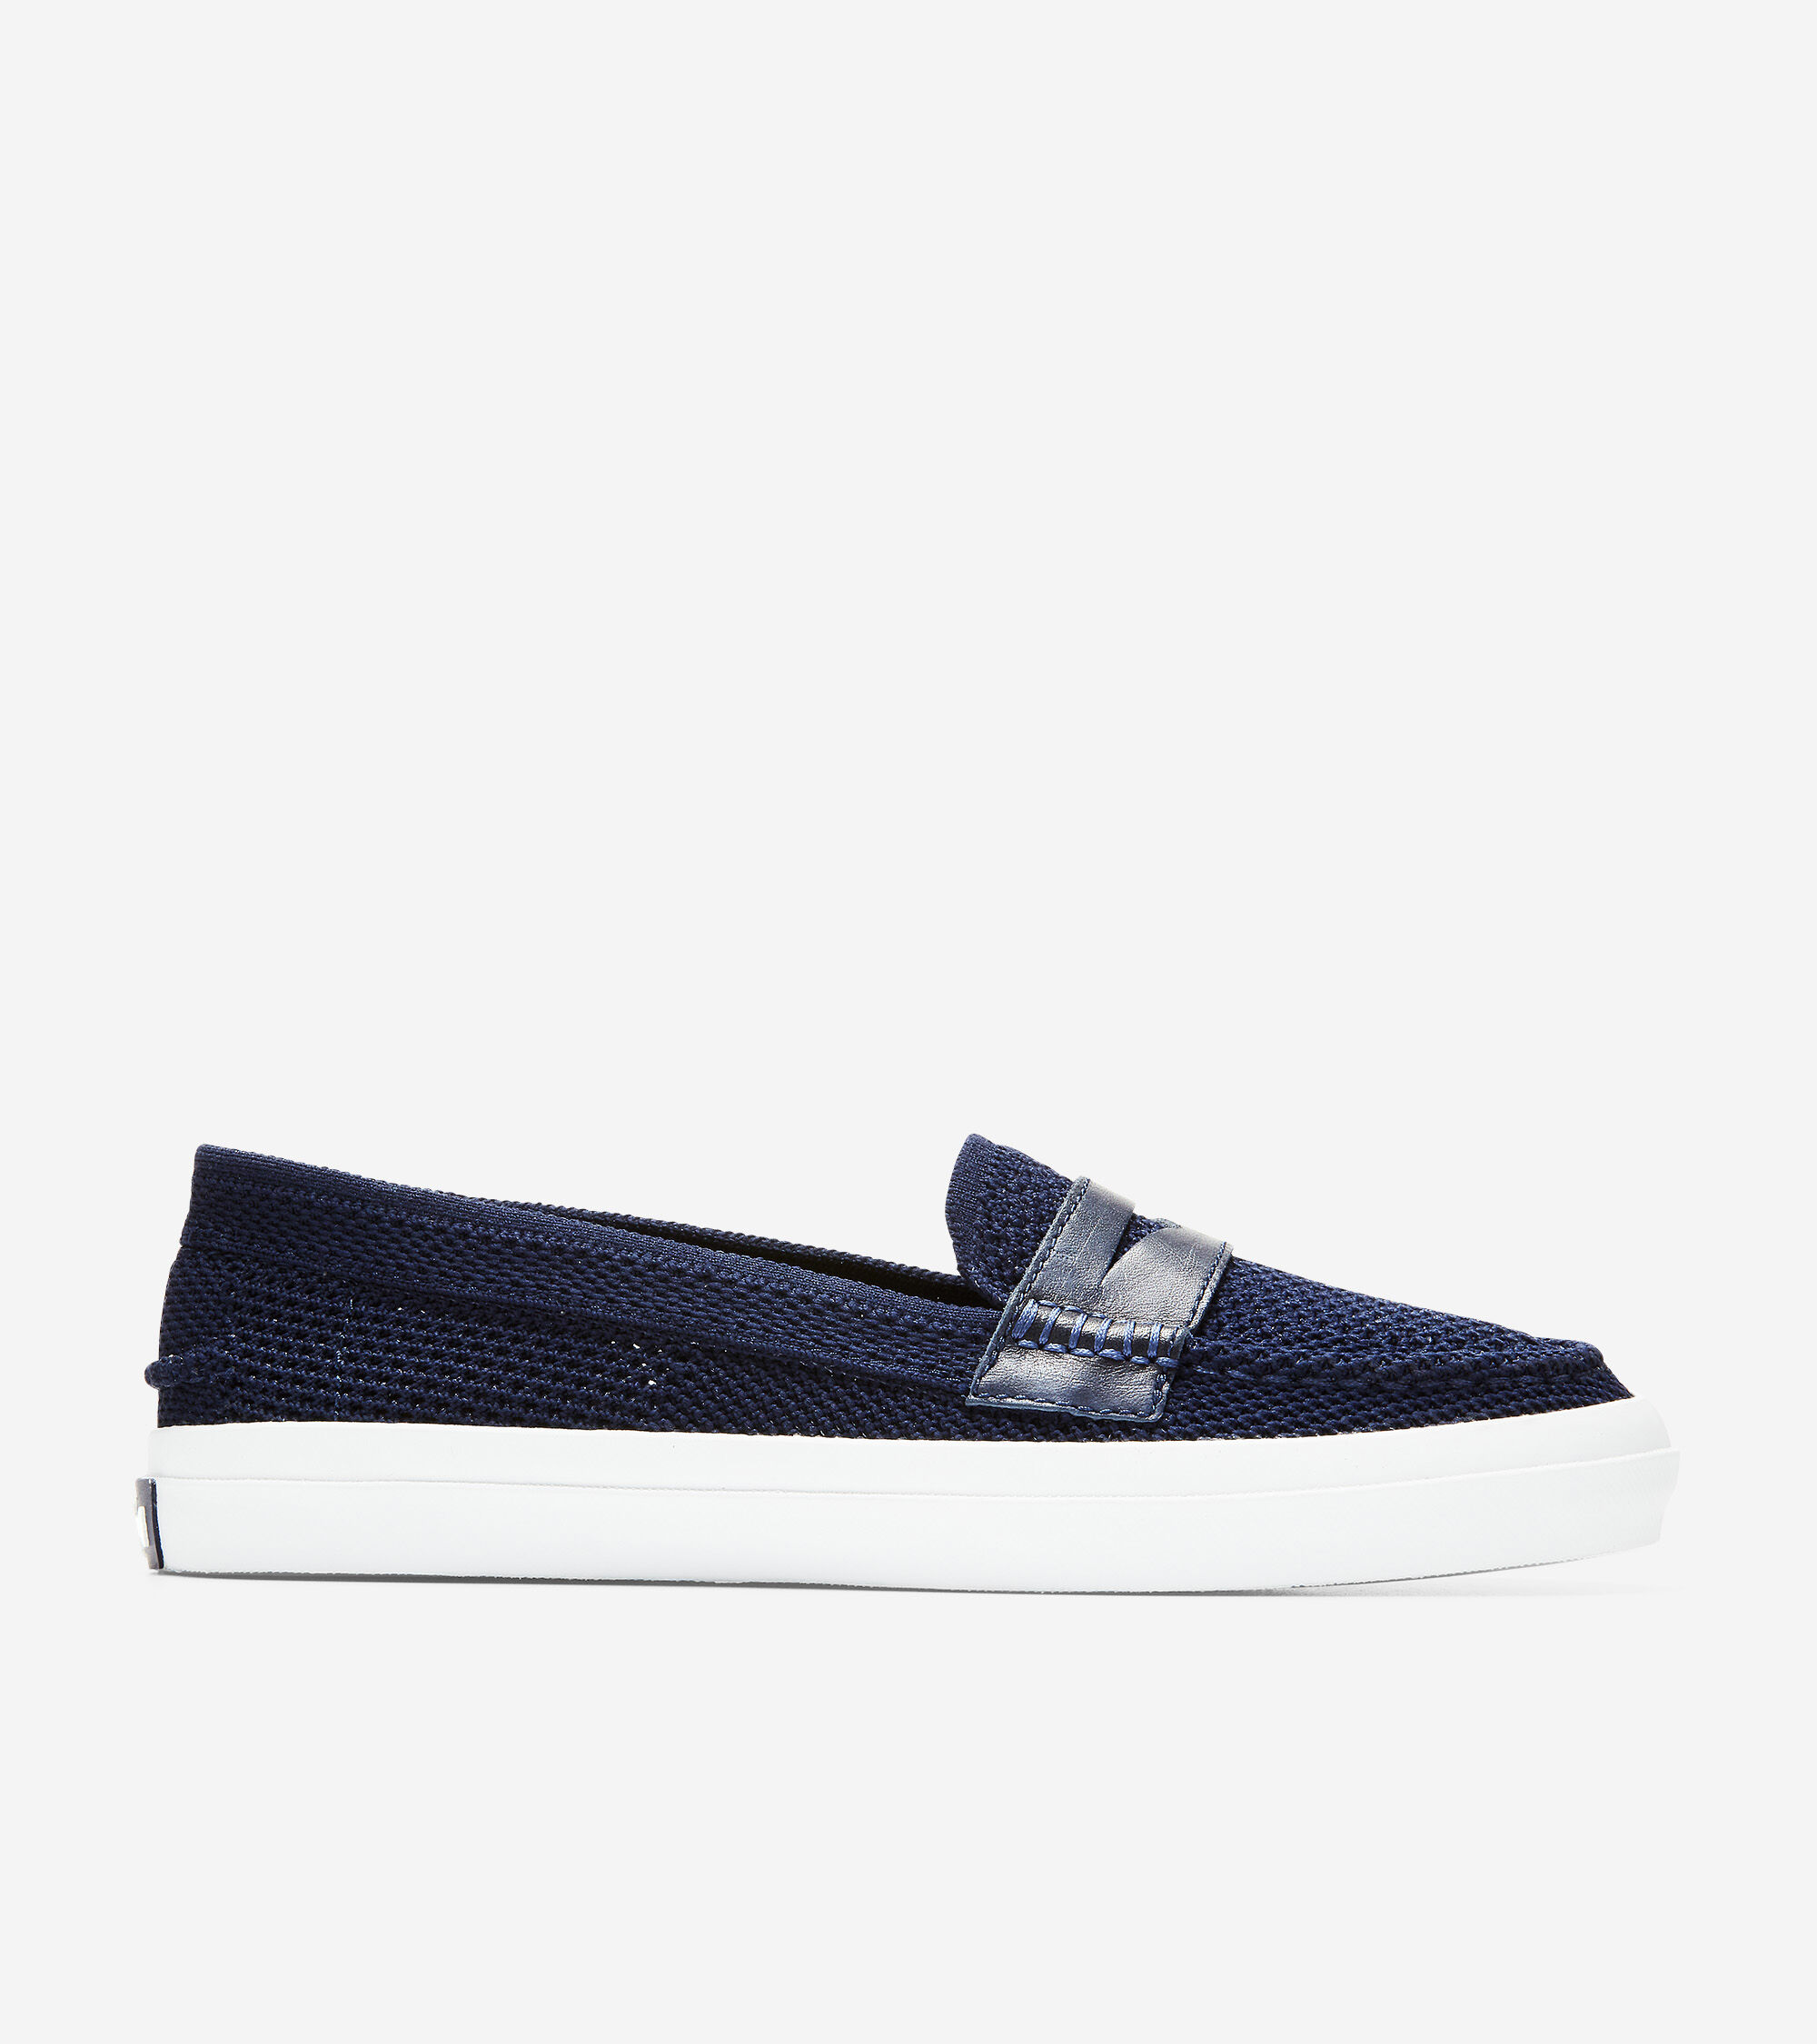 9cf7c1af002 Women s Pinch Weekender LX Loafers with Stitchlite in Navy